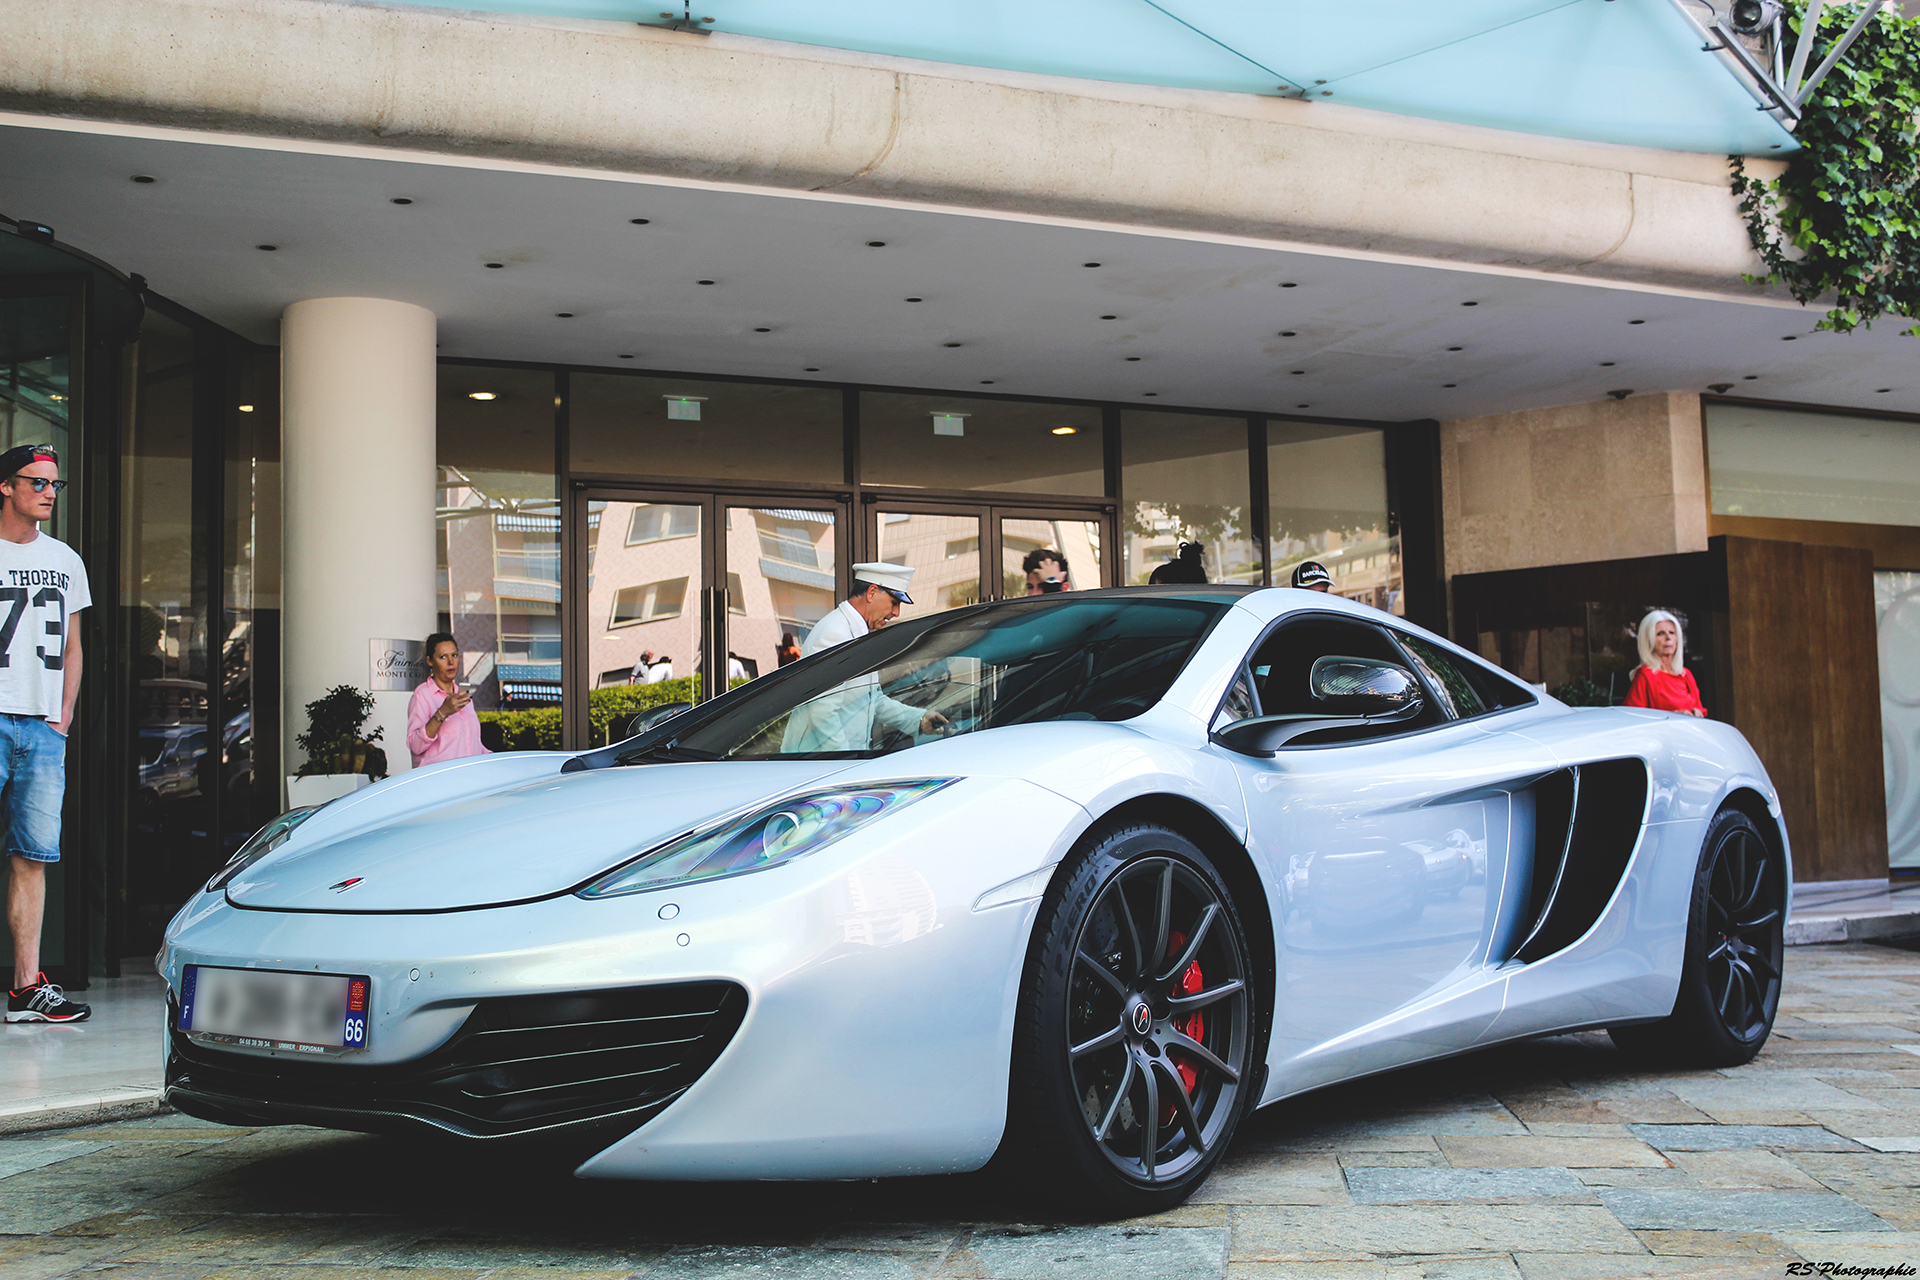 McLaren MP4-12C - Top Marques Monaco 2016 - Arnaud Demasier RS Photographie